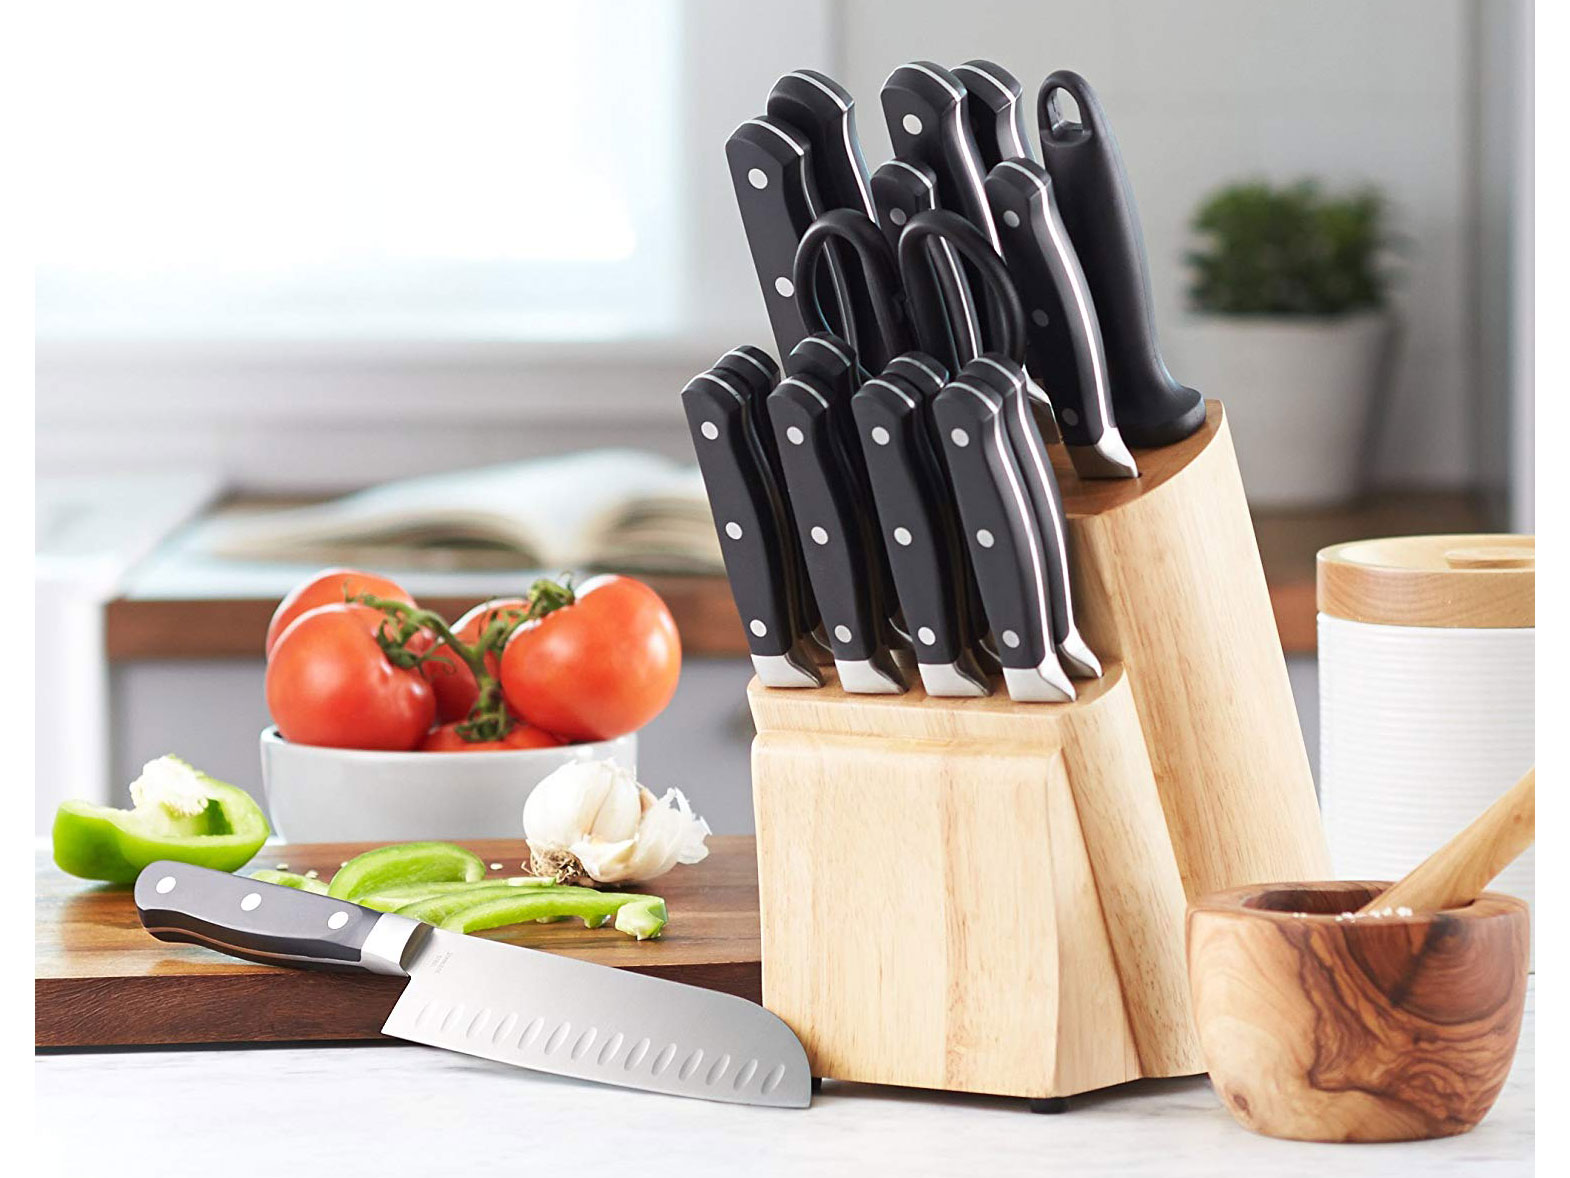 Amazon Prime Day Is Here: These Are the Best Kitchen Deals